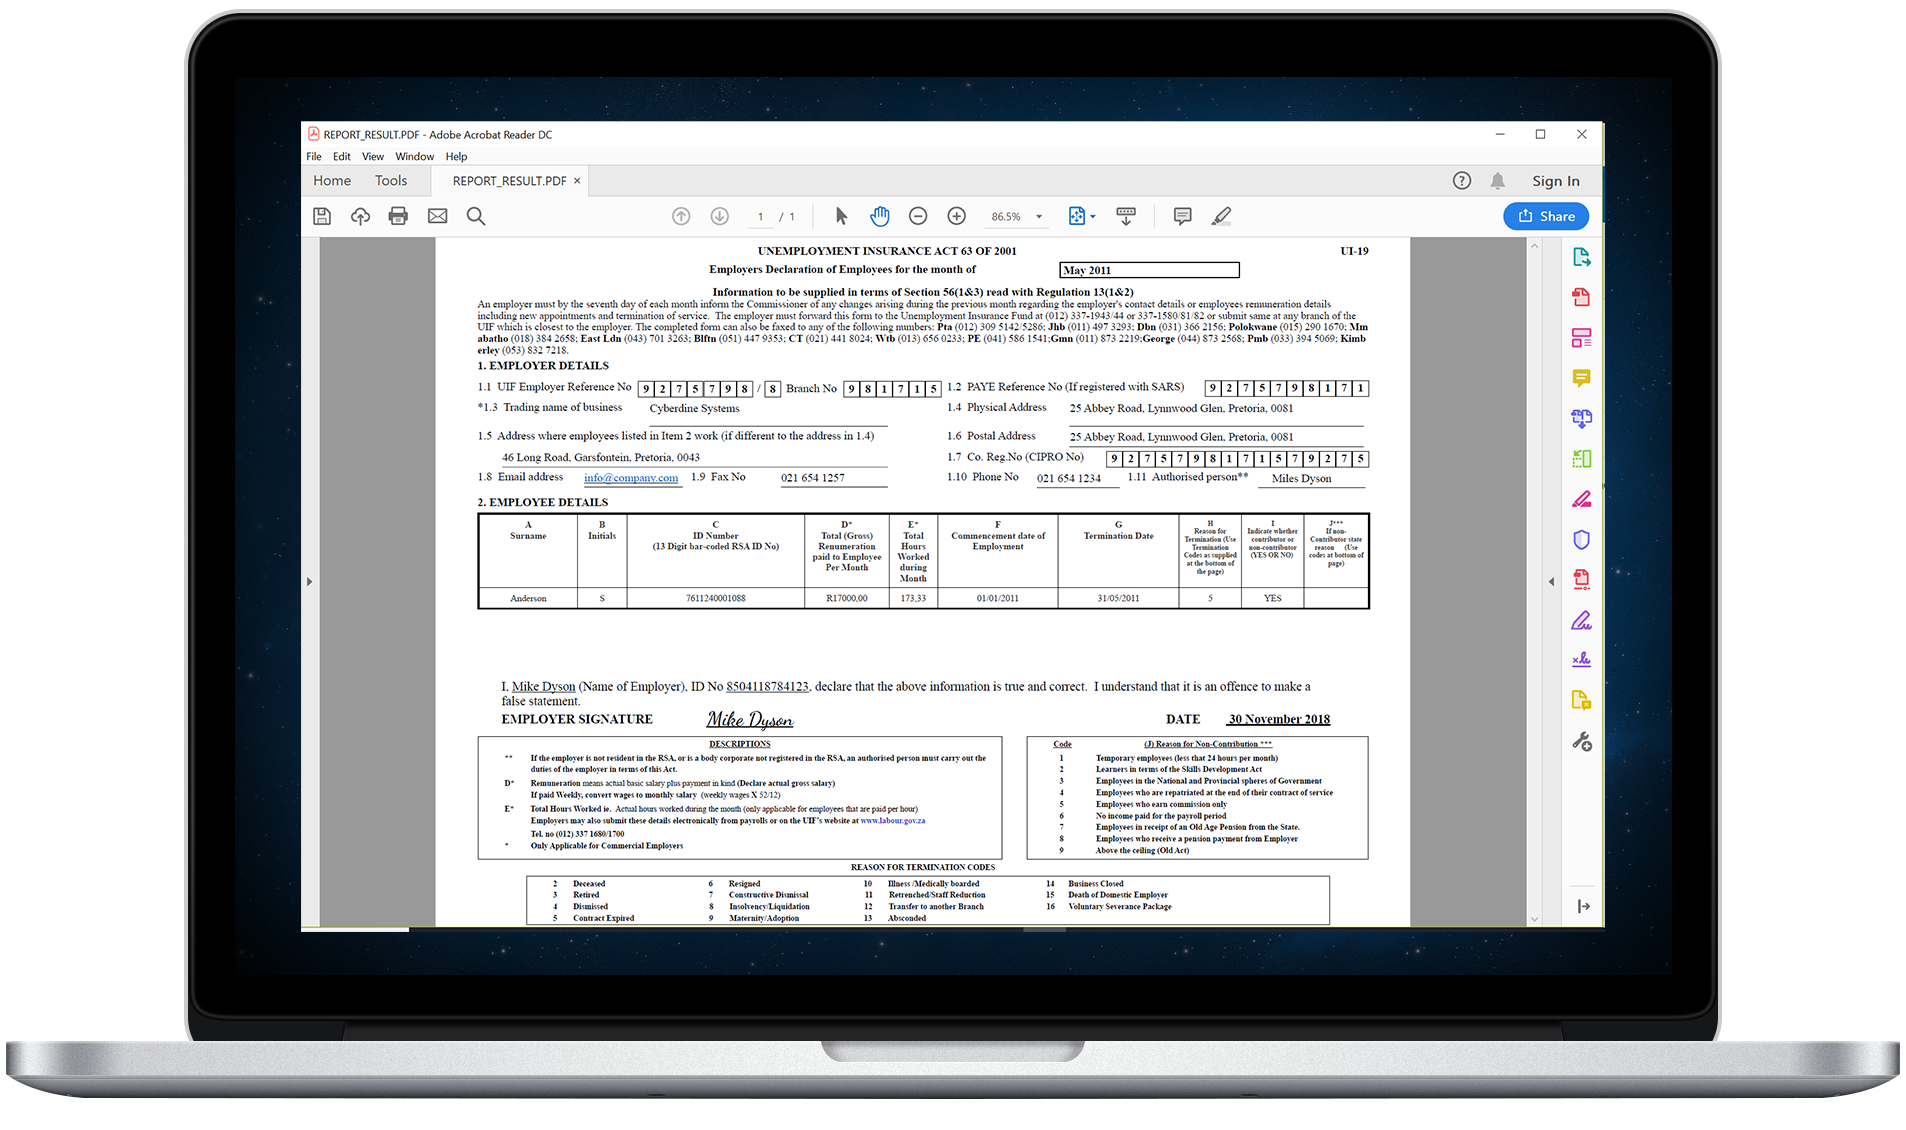 It is also possible to submit a bulk file to the UIF, instead of a generated UI-19 form, but a company may still want to opt to submit the generated form